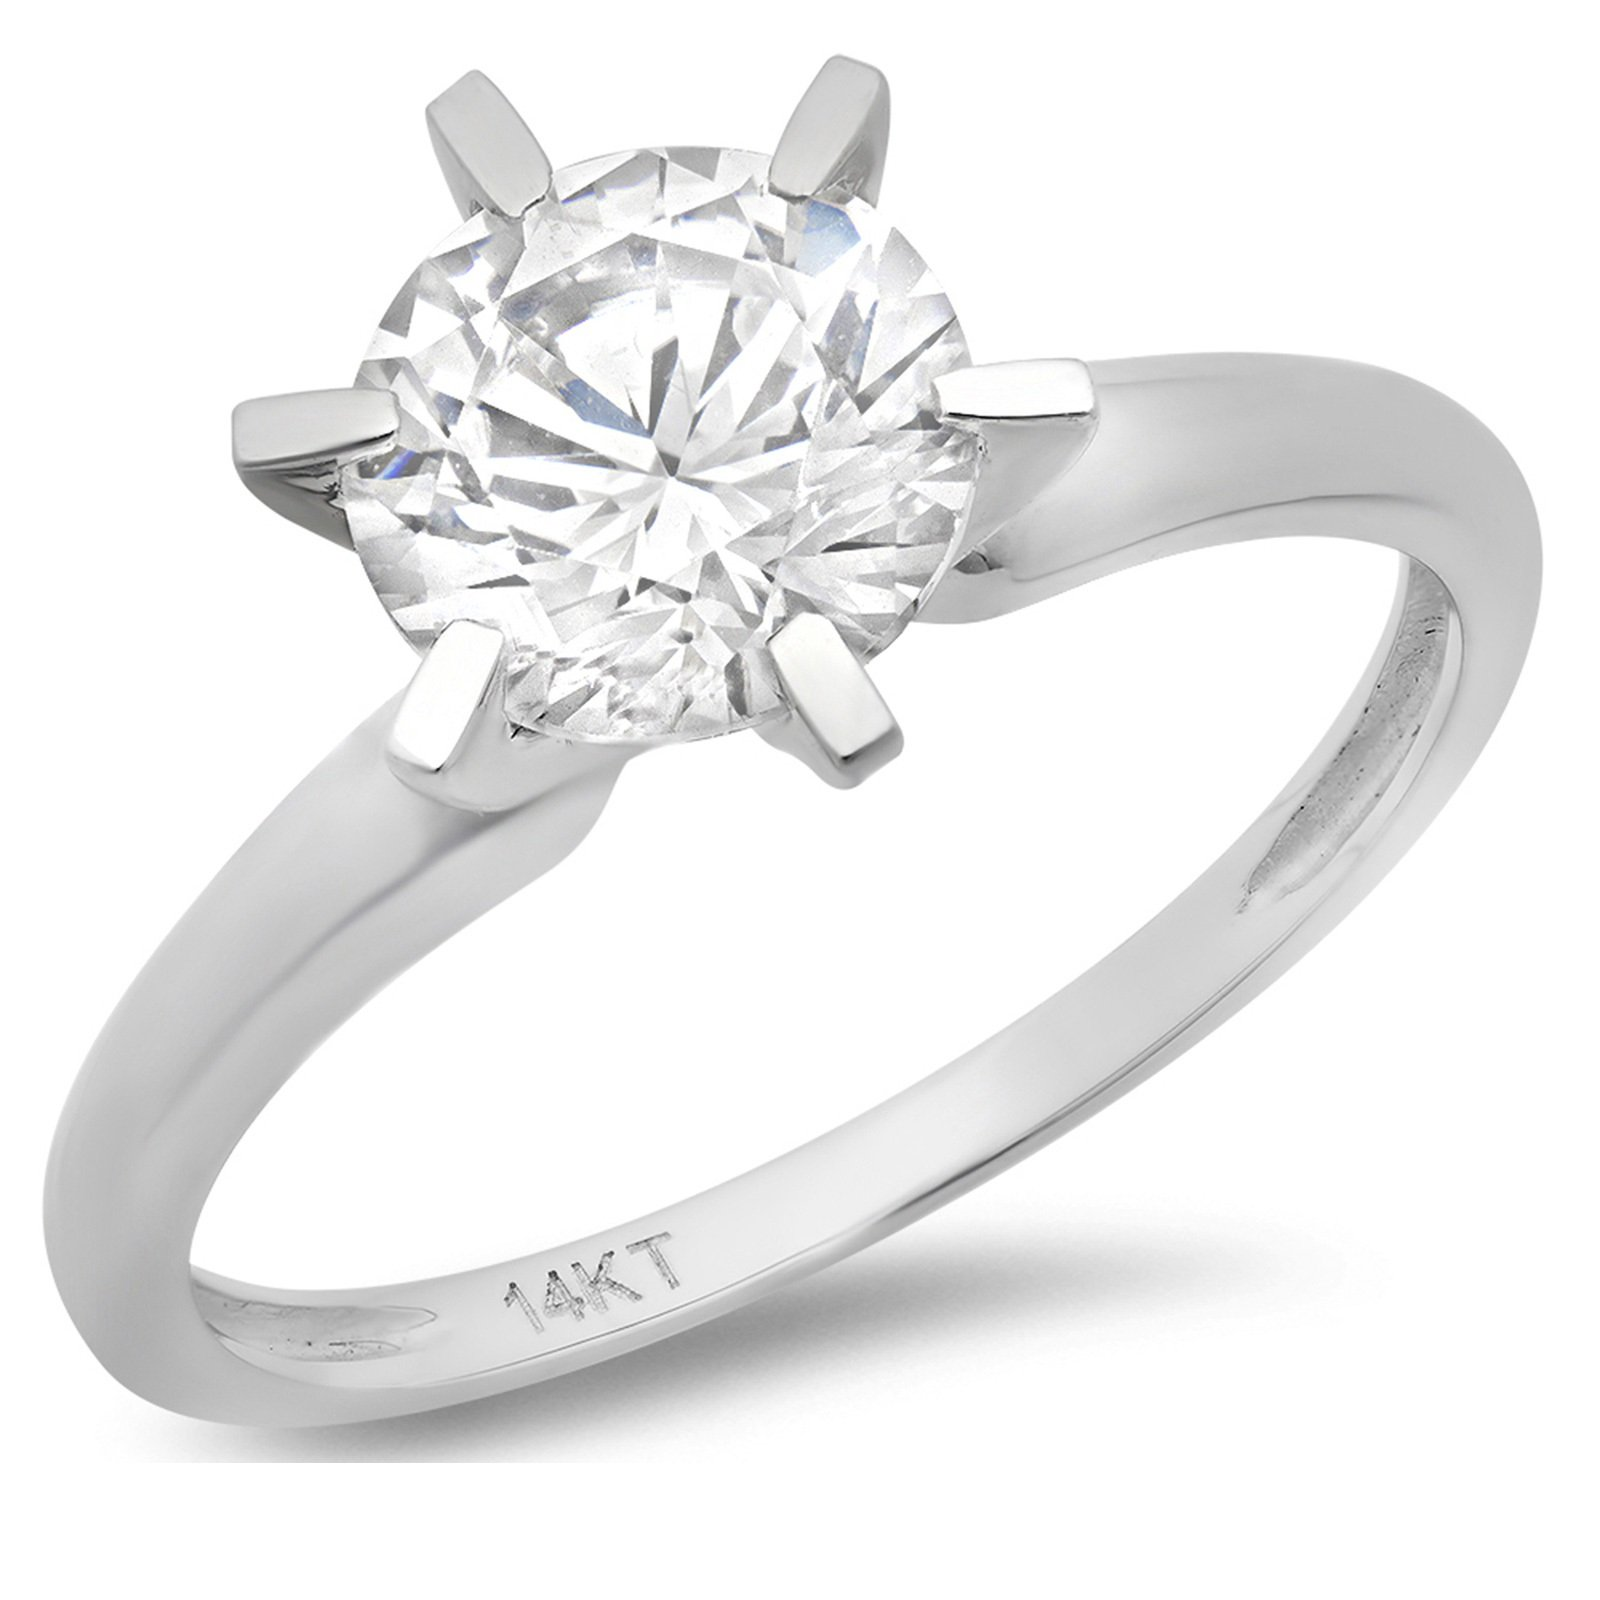 Clara Pucci 2.0 CT Brilliant Round Cut Simulated Diamond CZ Solitaire Engagement Wedding Ring Solid 14k White Gold, Size 3.75